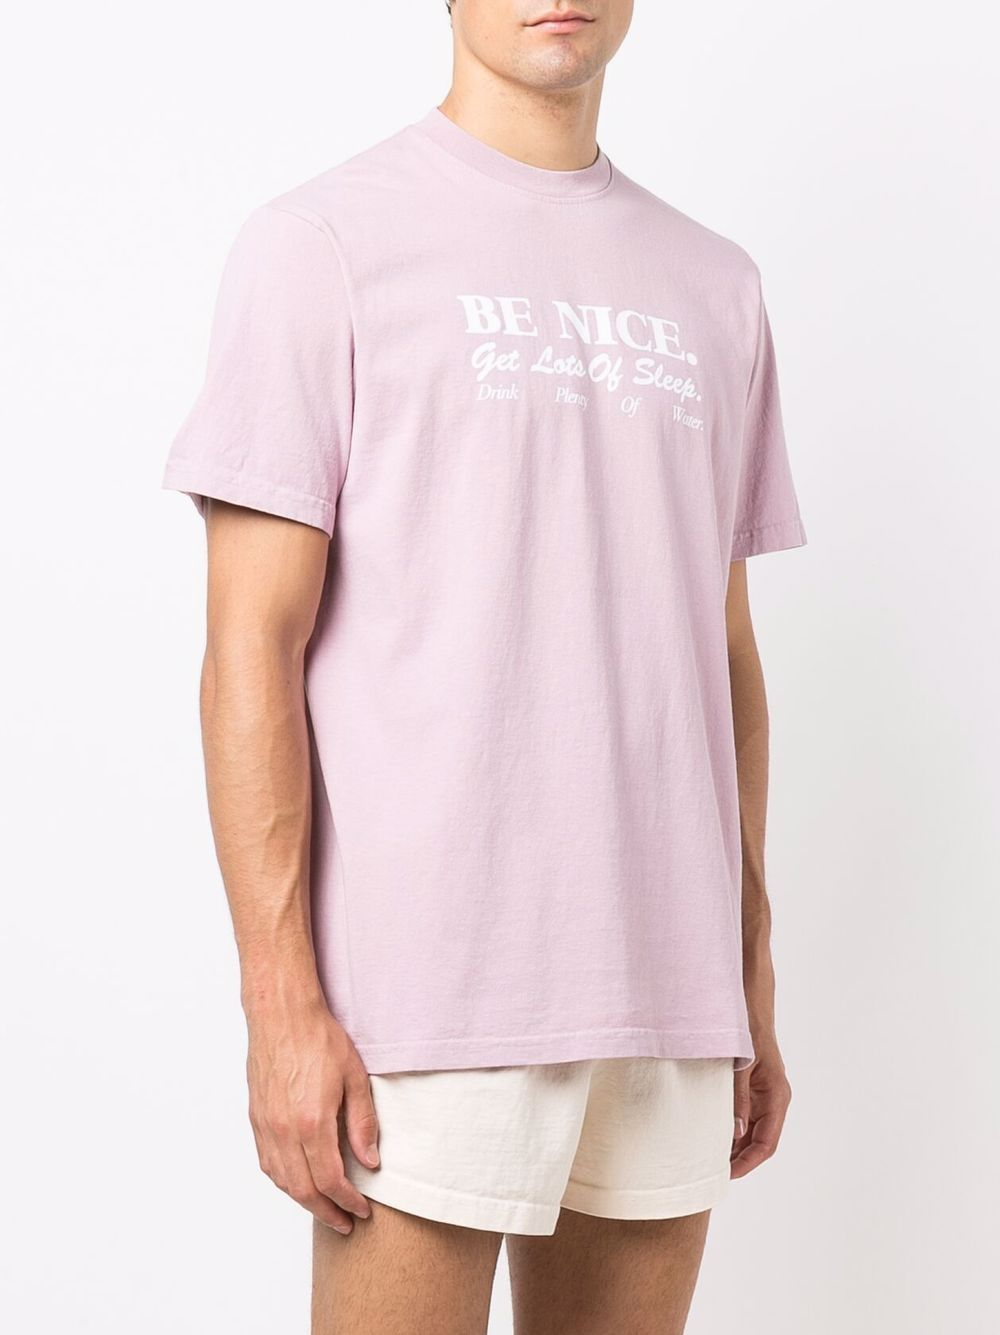 be nice t-shirt unisex pink in cotton SPORTY & RICH   T-shirts   TS182FN